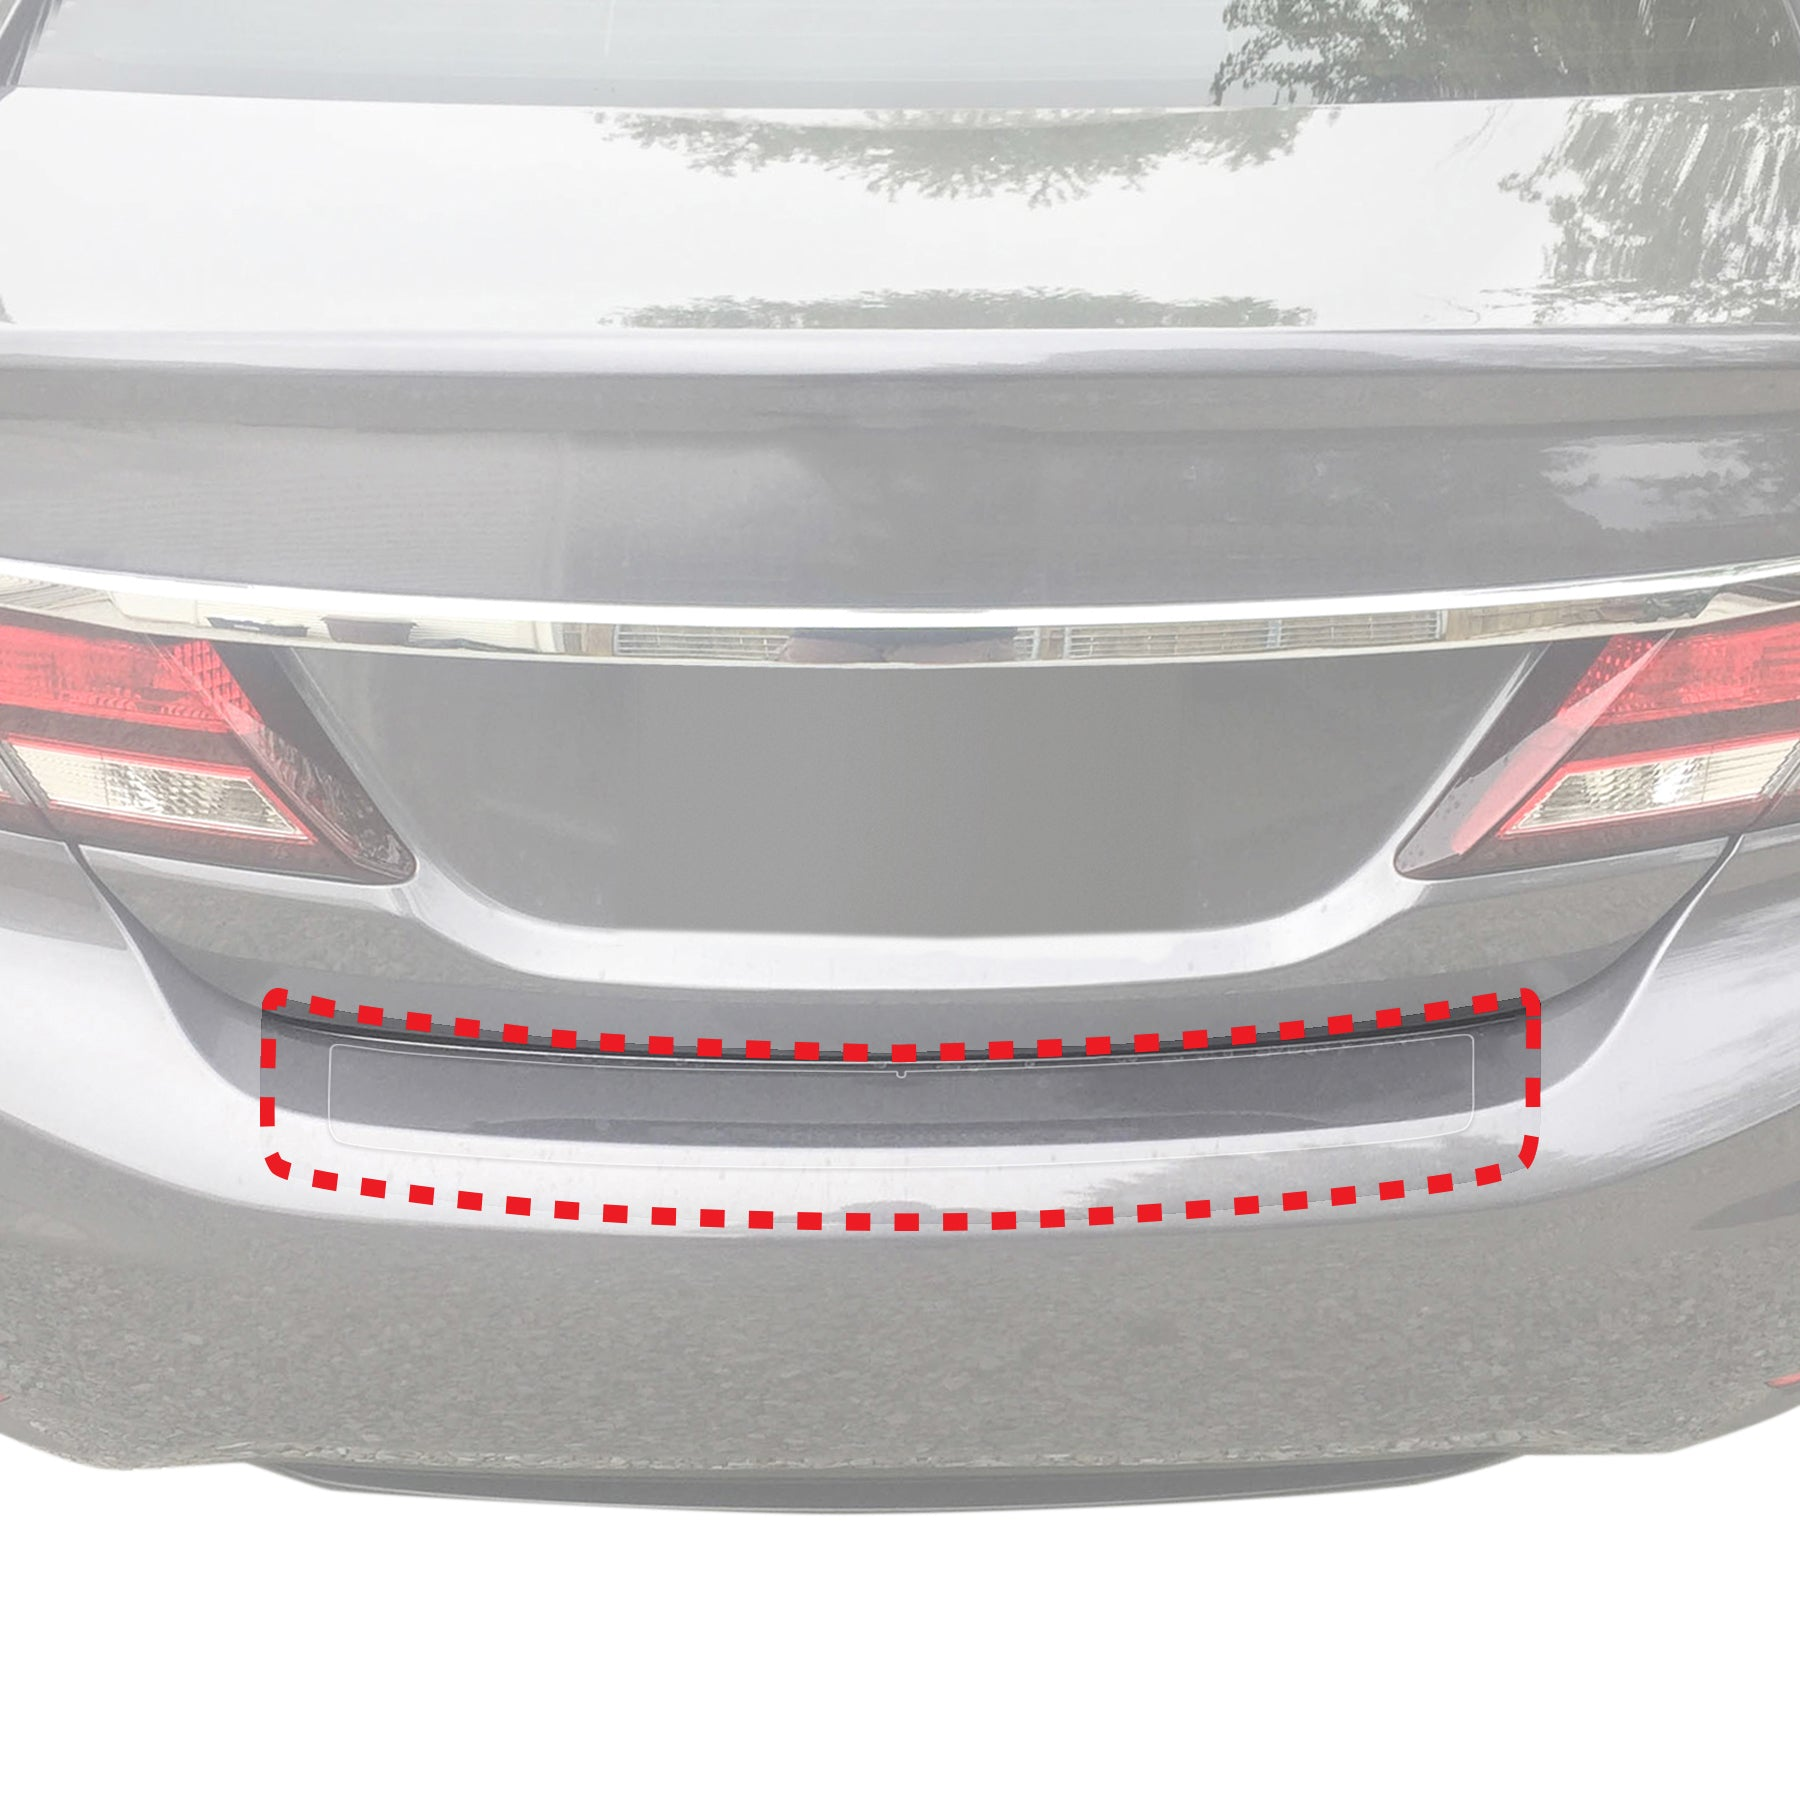 Red Hound Auto Rear Bumper Paint Protection Film 2013-2015 Compatible with Honda Civic Sedan 4dr 1pc PPF Custom Guard Clear Applique Cover Self Healing Invisible Cover Wet Install